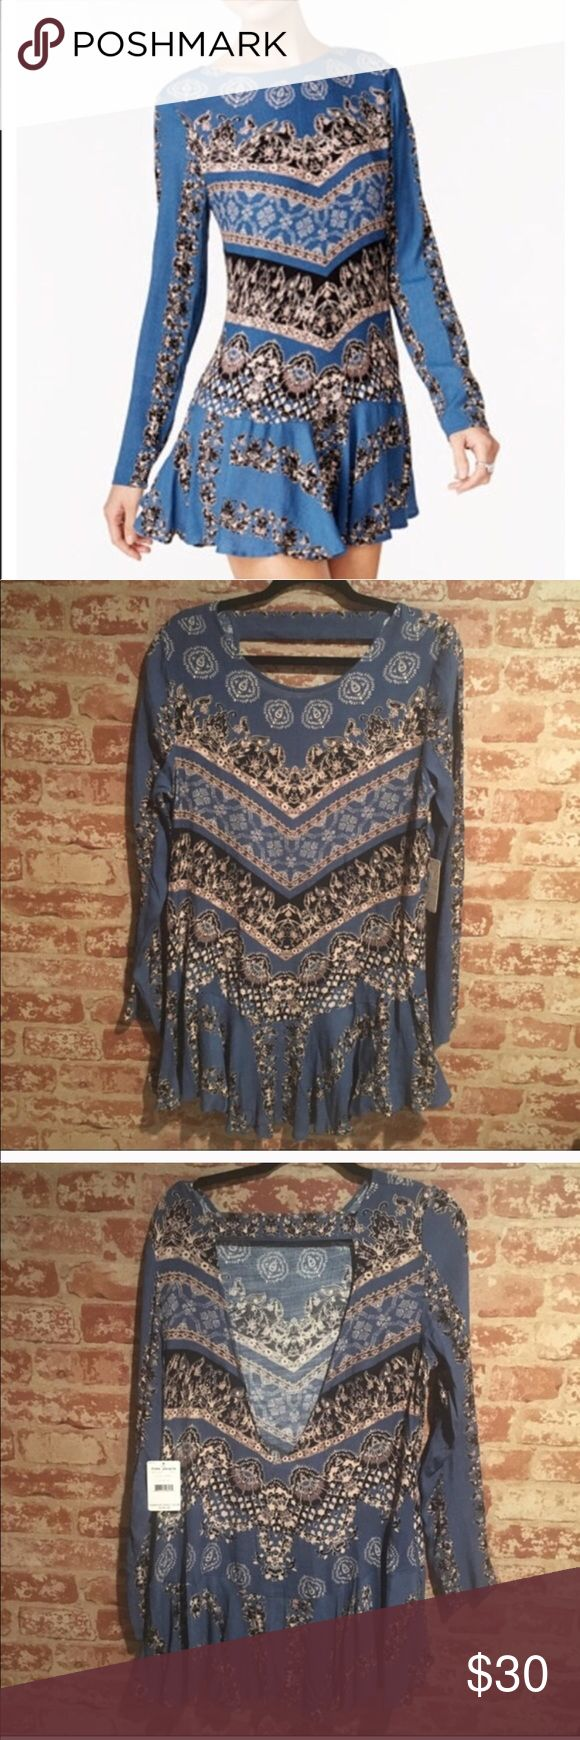 Free people smooth talker open back dress BRAND NEW (tag is missing)! Size medium-NEVER WORN👍 Free People Dresses